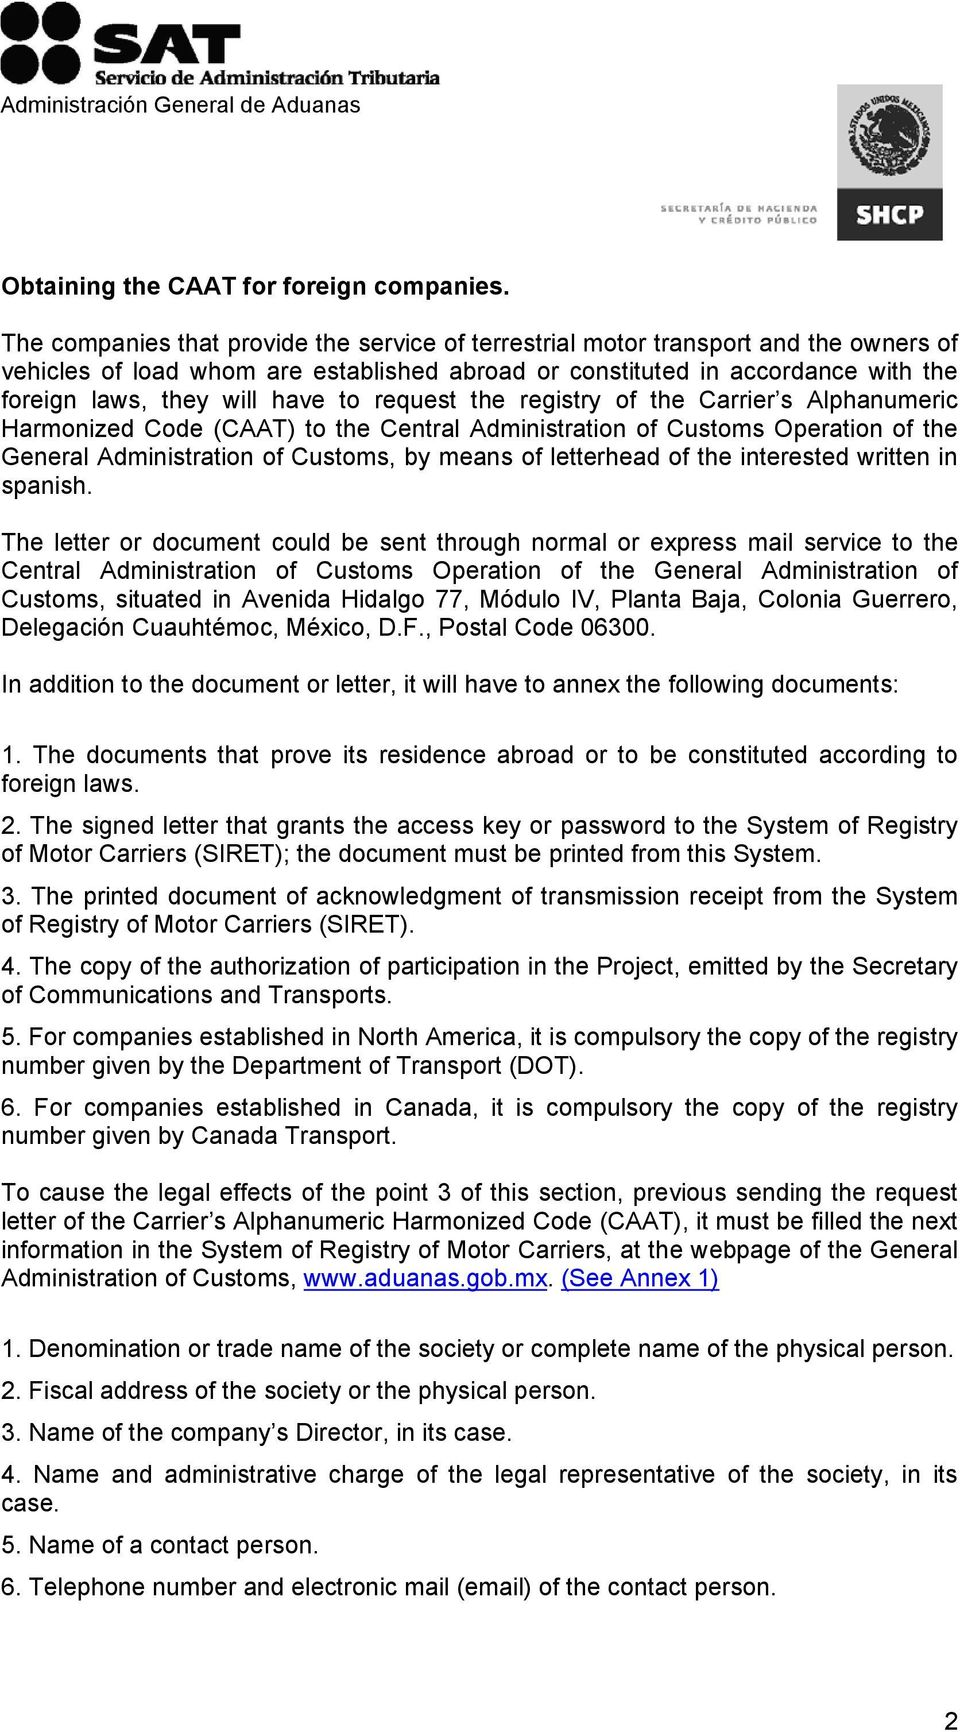 to request the registry of the Carrier s Alphanumeric Harmonized Code (CAAT) to the Central Administration of Customs Operation of the General Administration of Customs, by means of letterhead of the